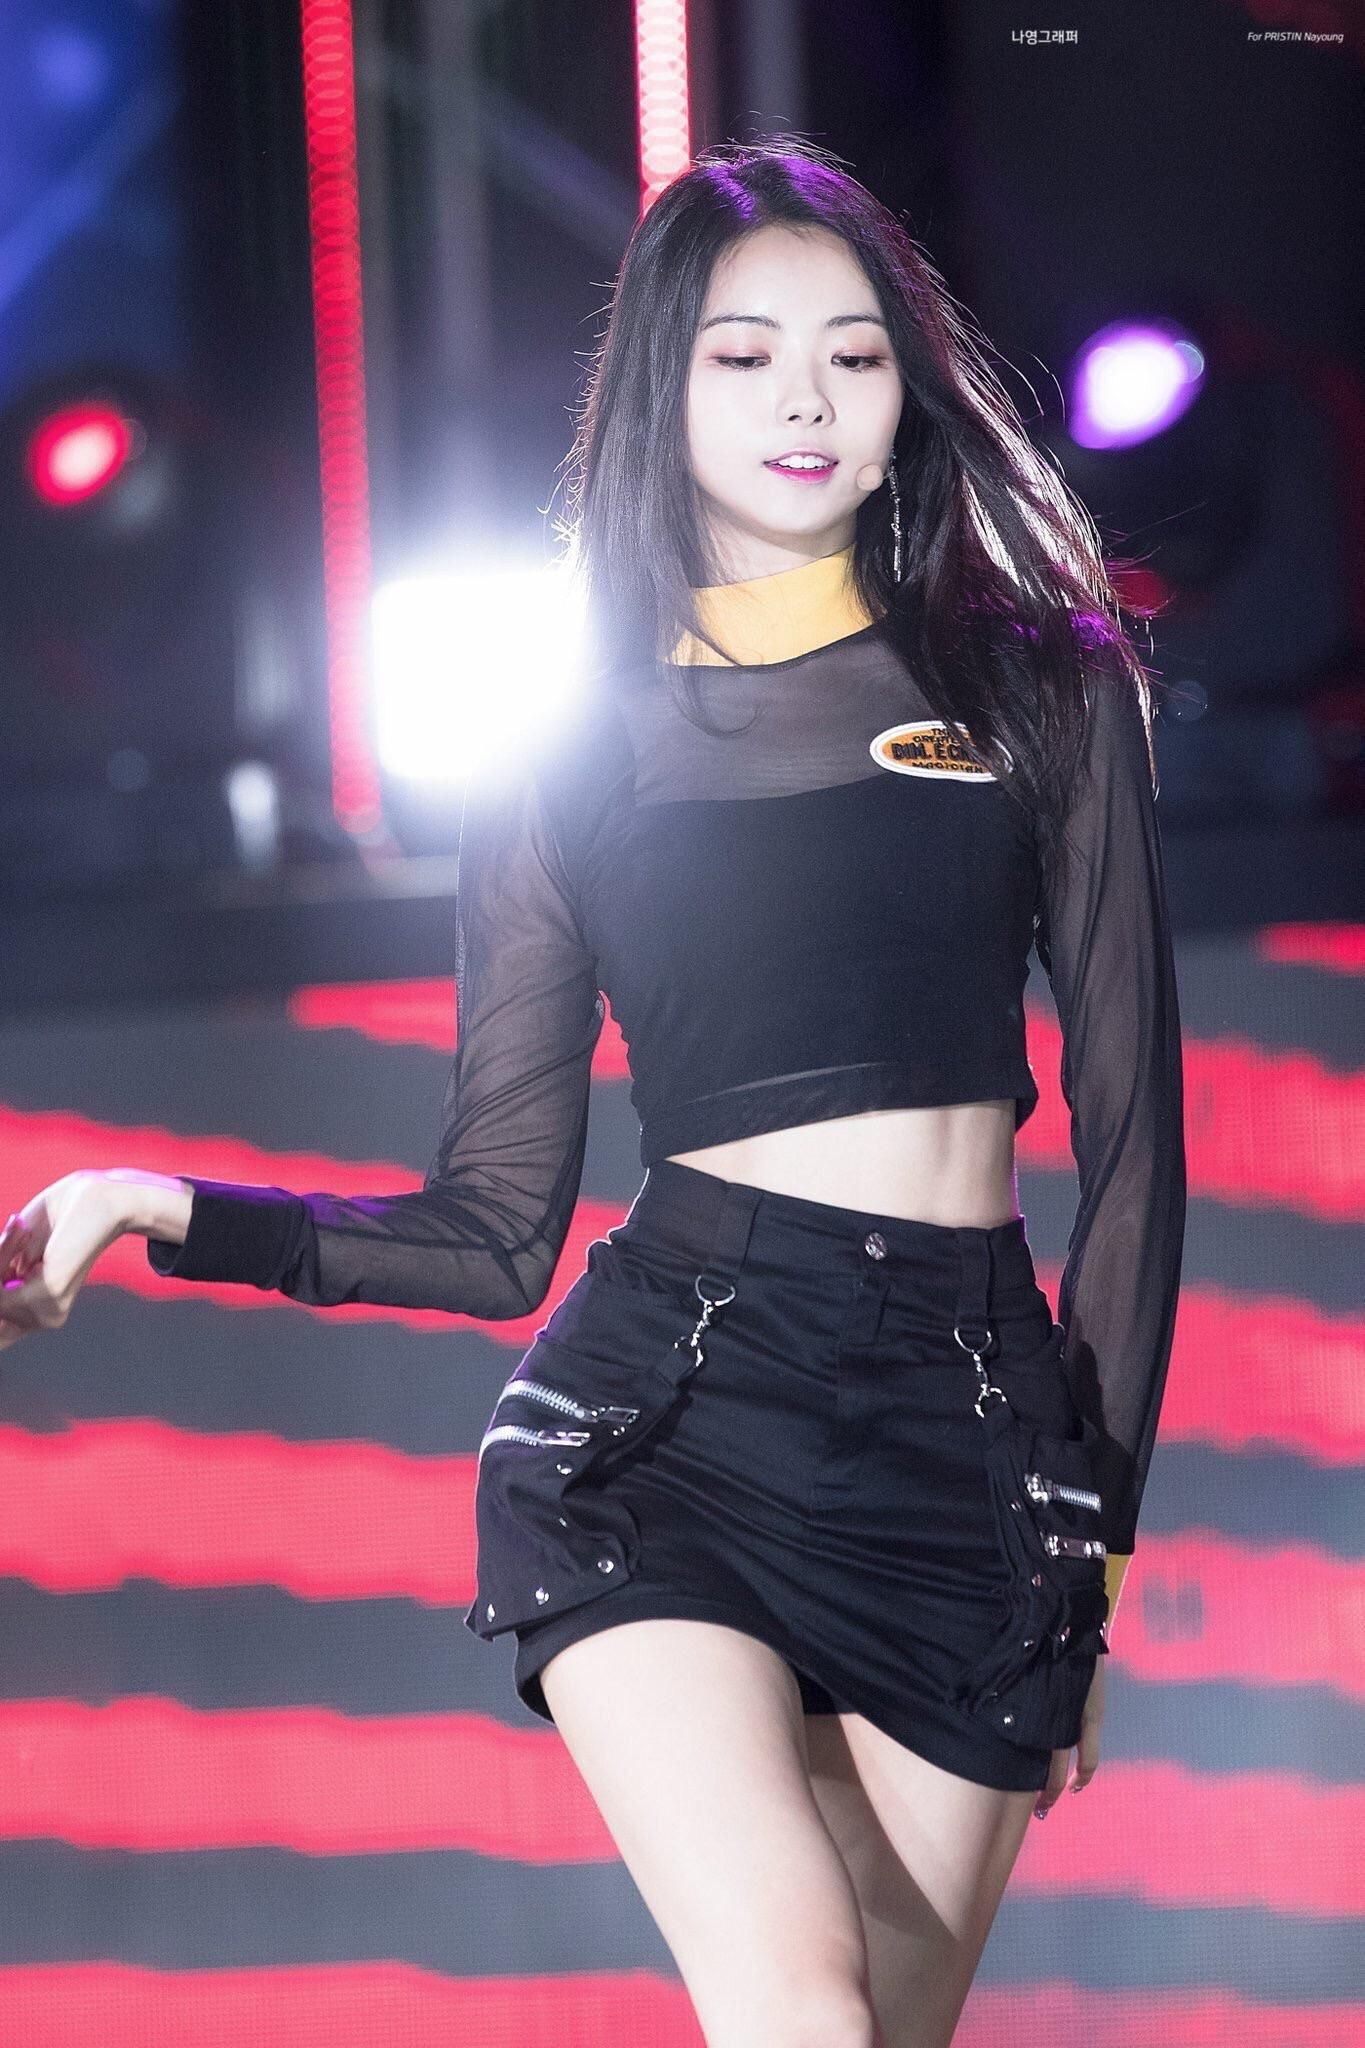 Nayoung Kpop Kdrama Bts Exo Kpoparmy Dance Outfits Kpop Fashion Stage Outfits